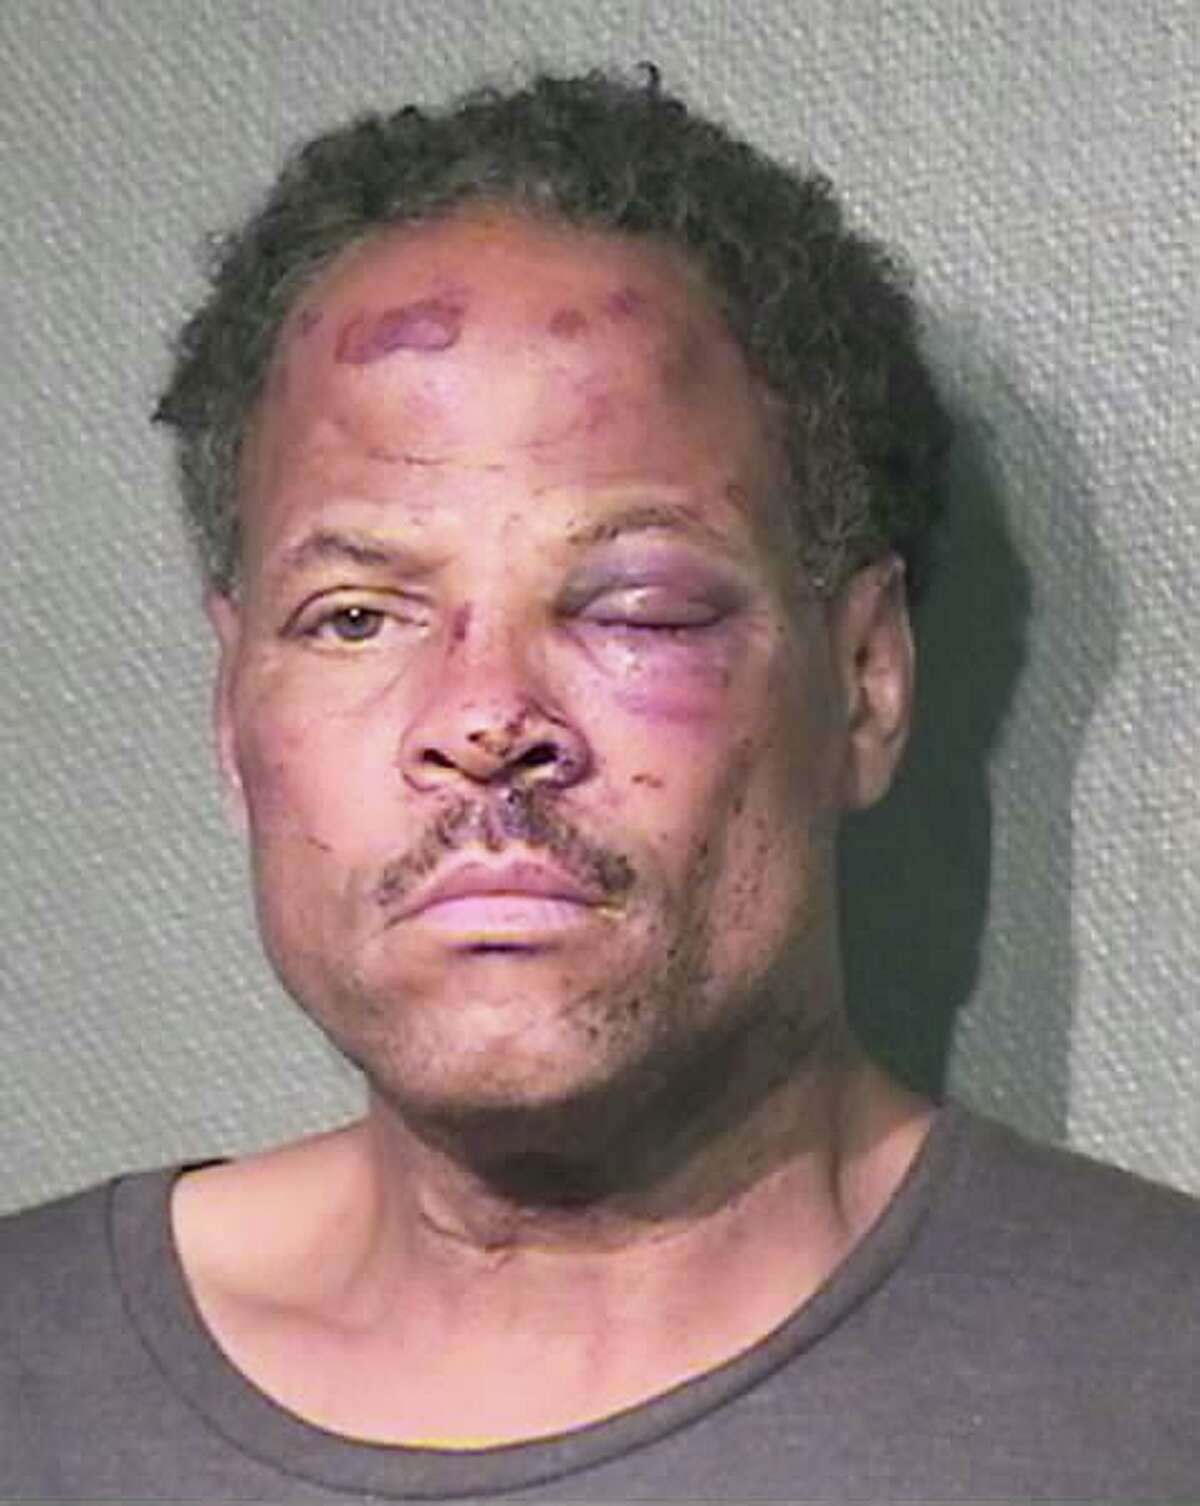 Dwayne Walker's booking shot in 2017, after Houston Police Department officer Shane Privette repeatedly kneed him in side and face after authorities said he tried to flee.